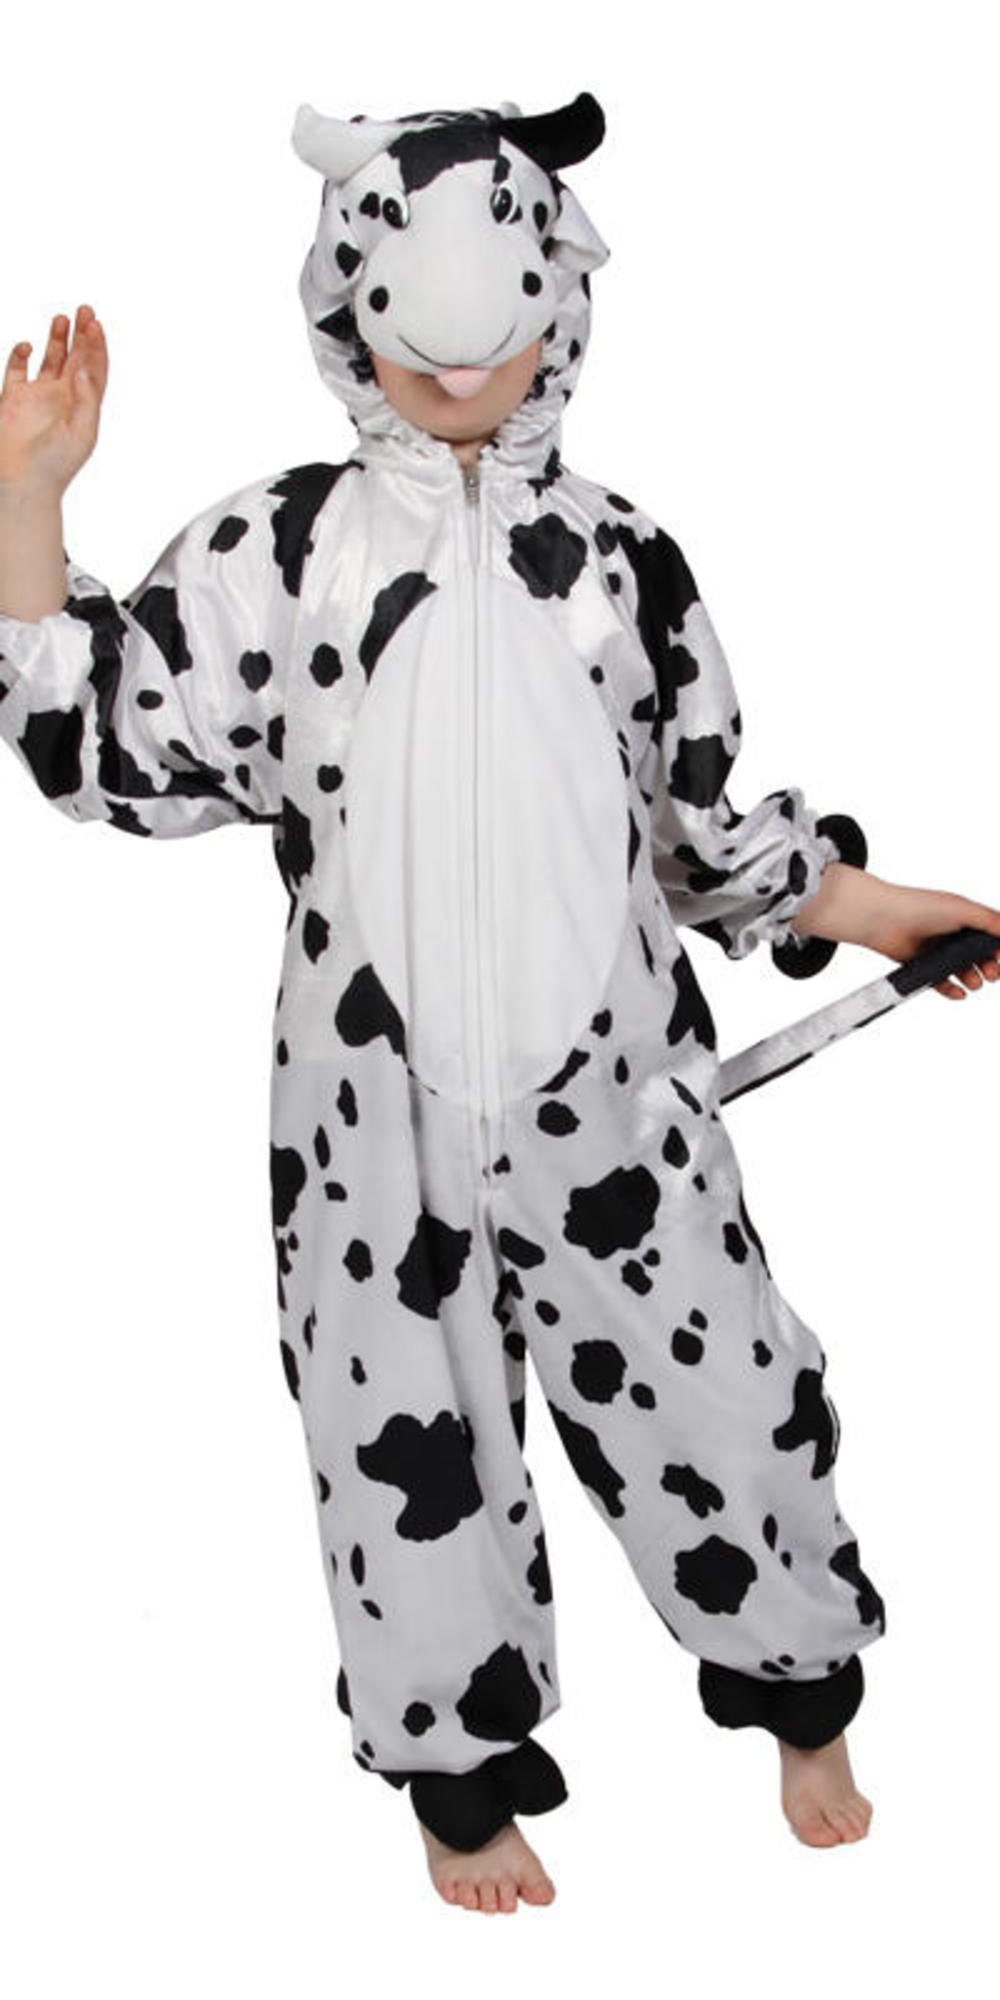 Cow Kids Farm Animal Fancy Dress Child Boys Girls Costume Outfit 3-11 Years New